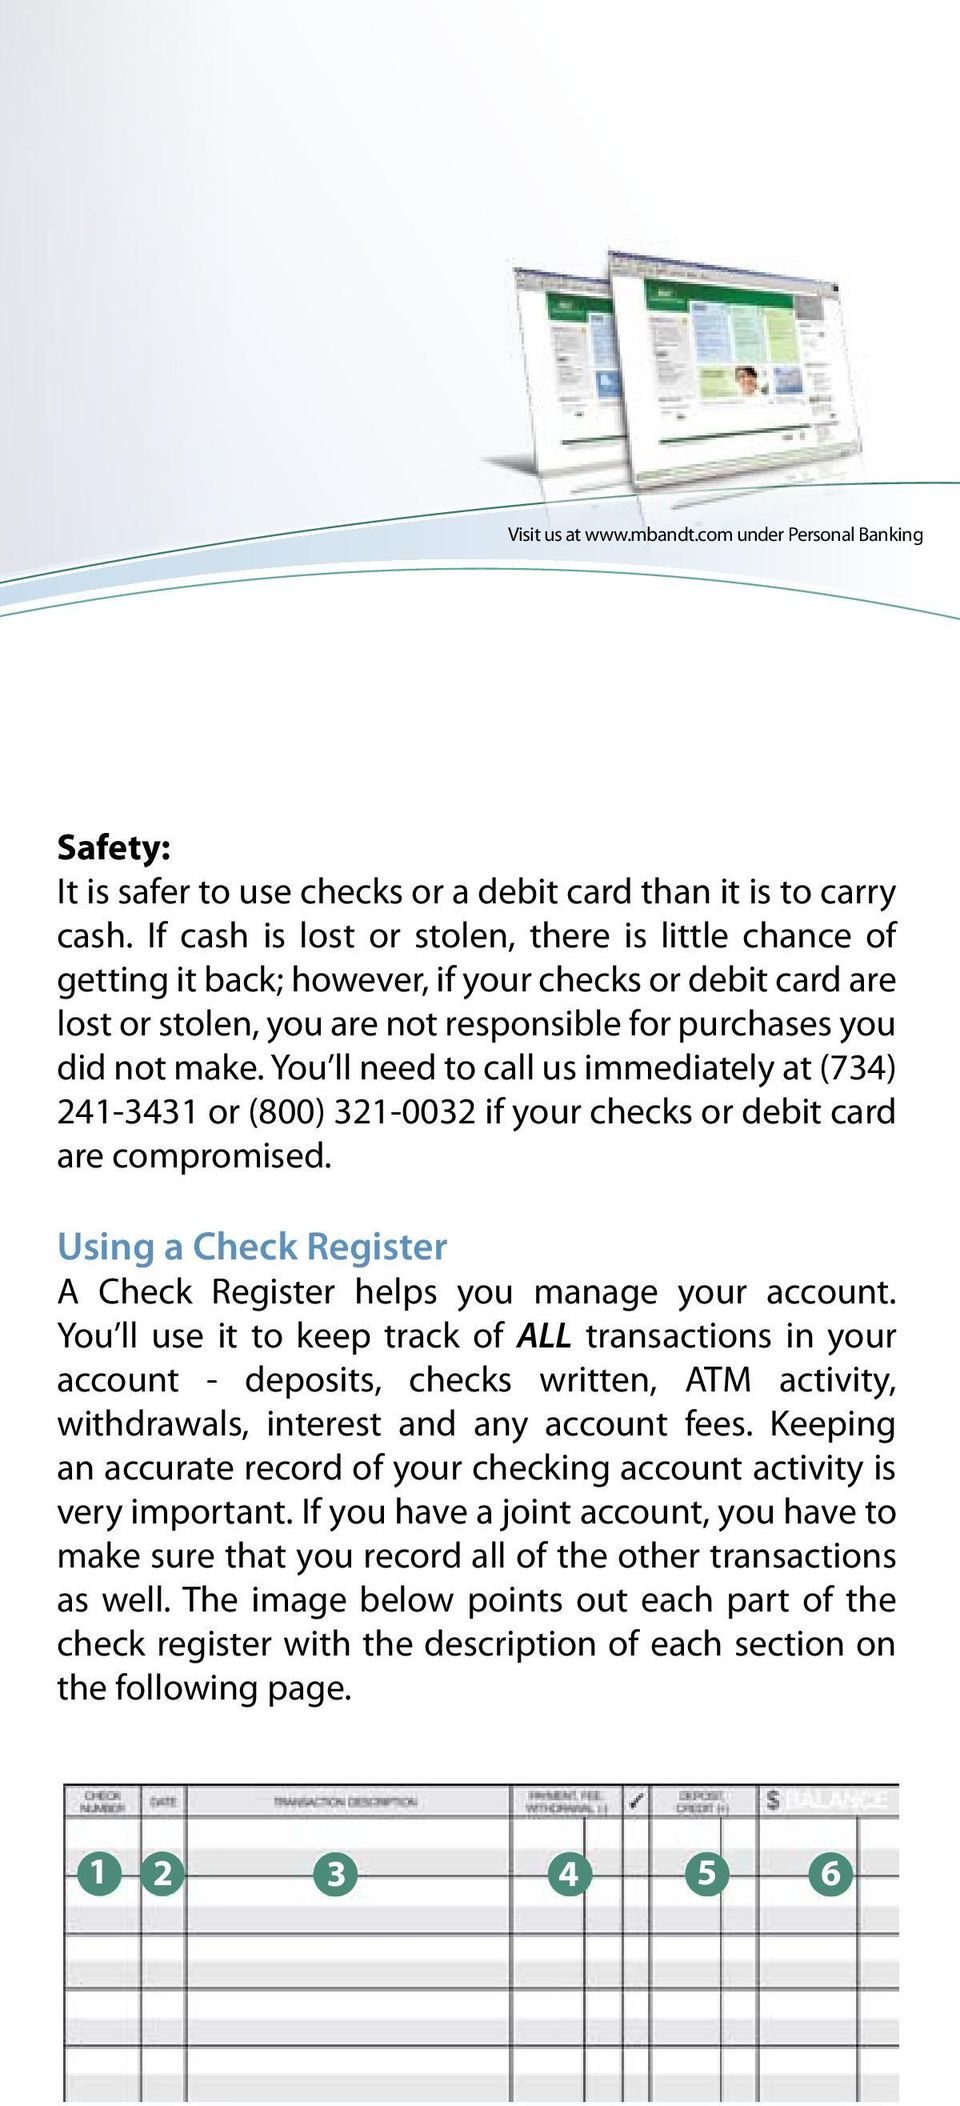 You ll need to call us immediately at (734) 241-3431 or (800) 321-0032 if your checks or debit card are compromised. Using a Check Register A Check Register helps you manage your account.